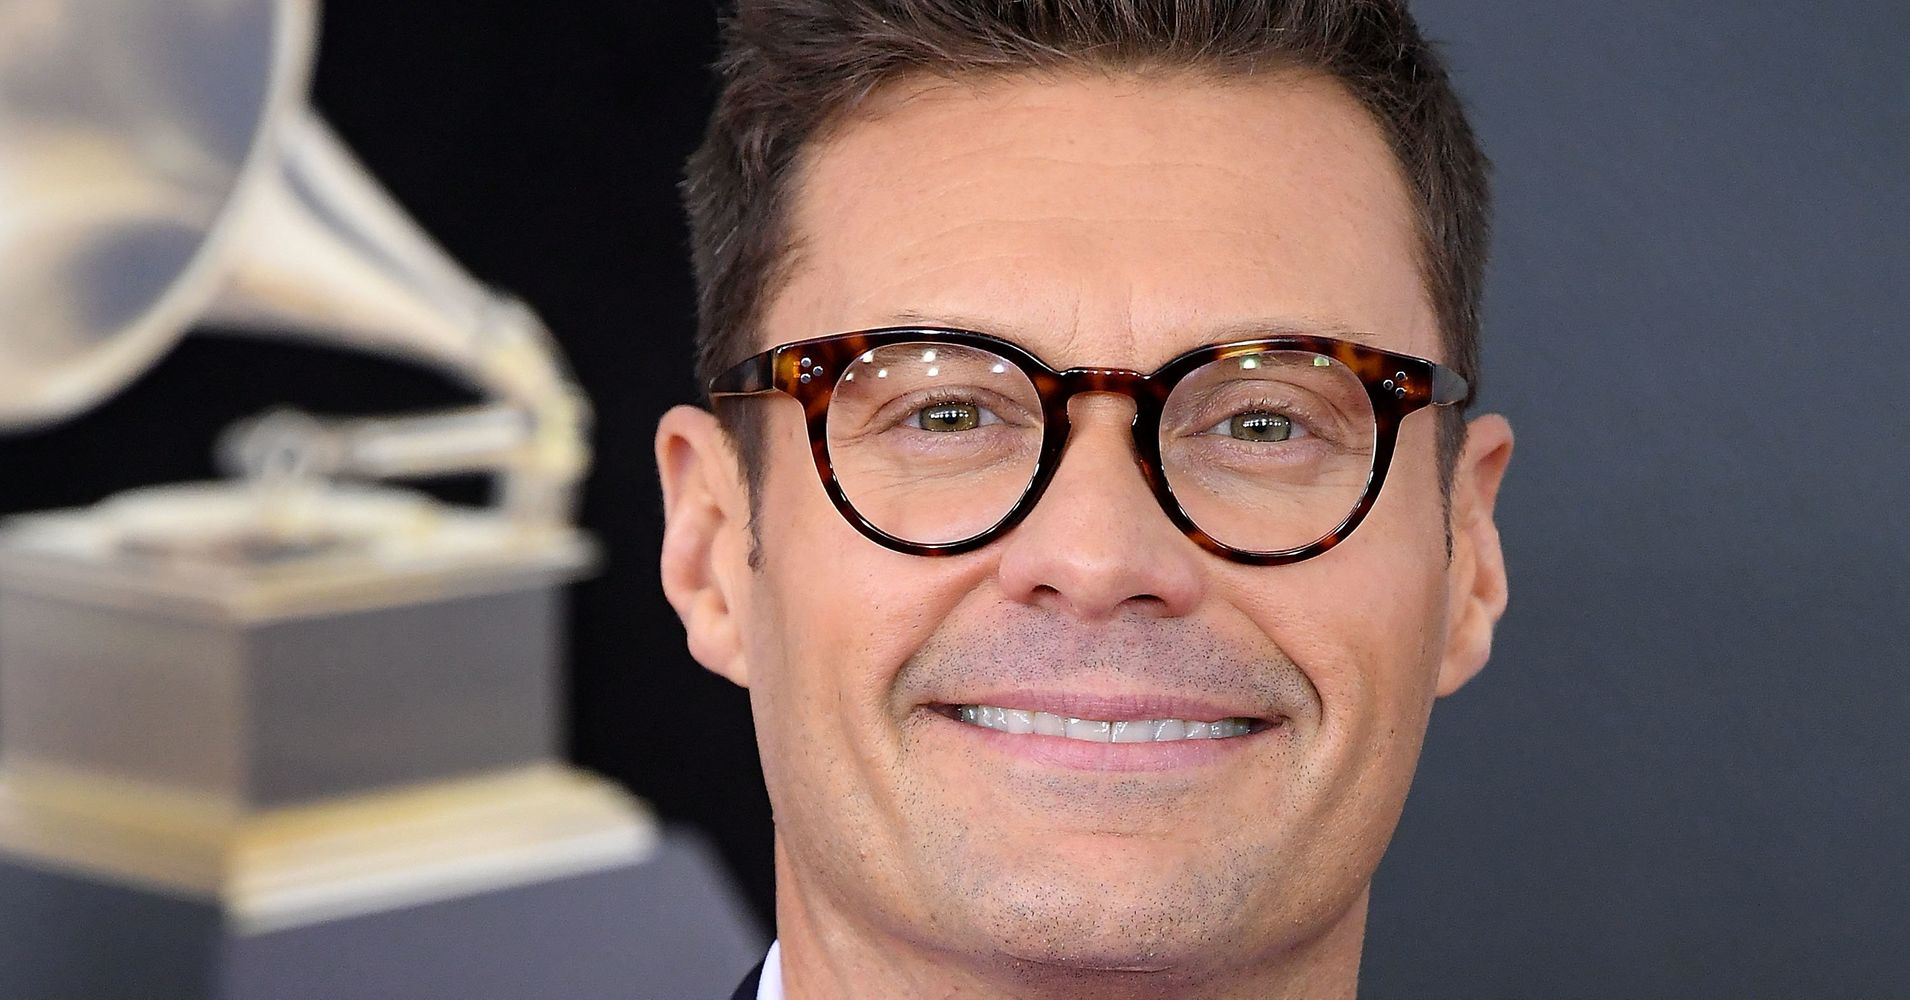 Ryan Seacrest's Former Stylist Says He Sexually Harassed Her For Years